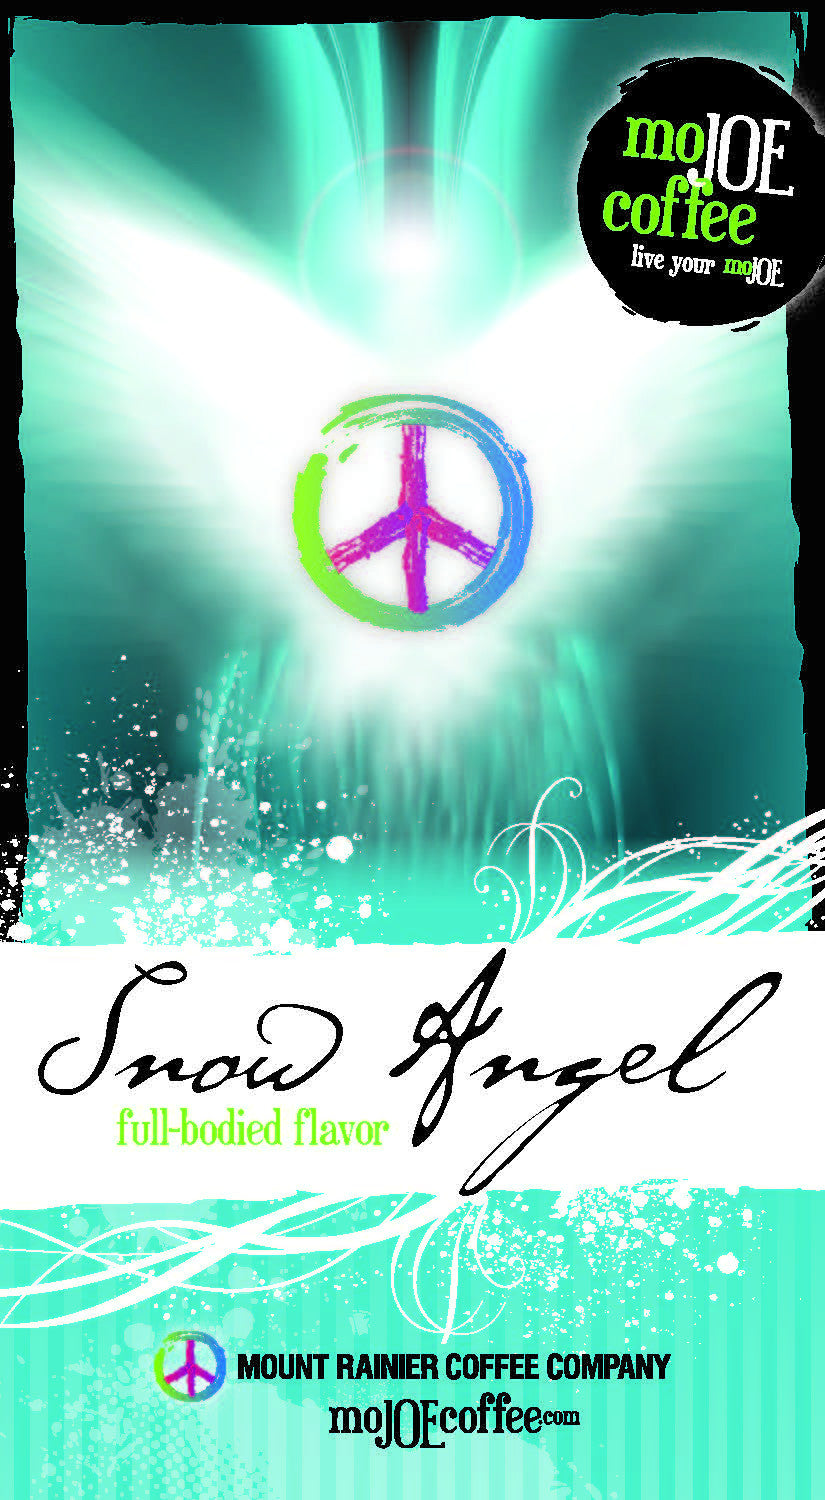 Snow Angel: Available from Nov 1 to Jan 10